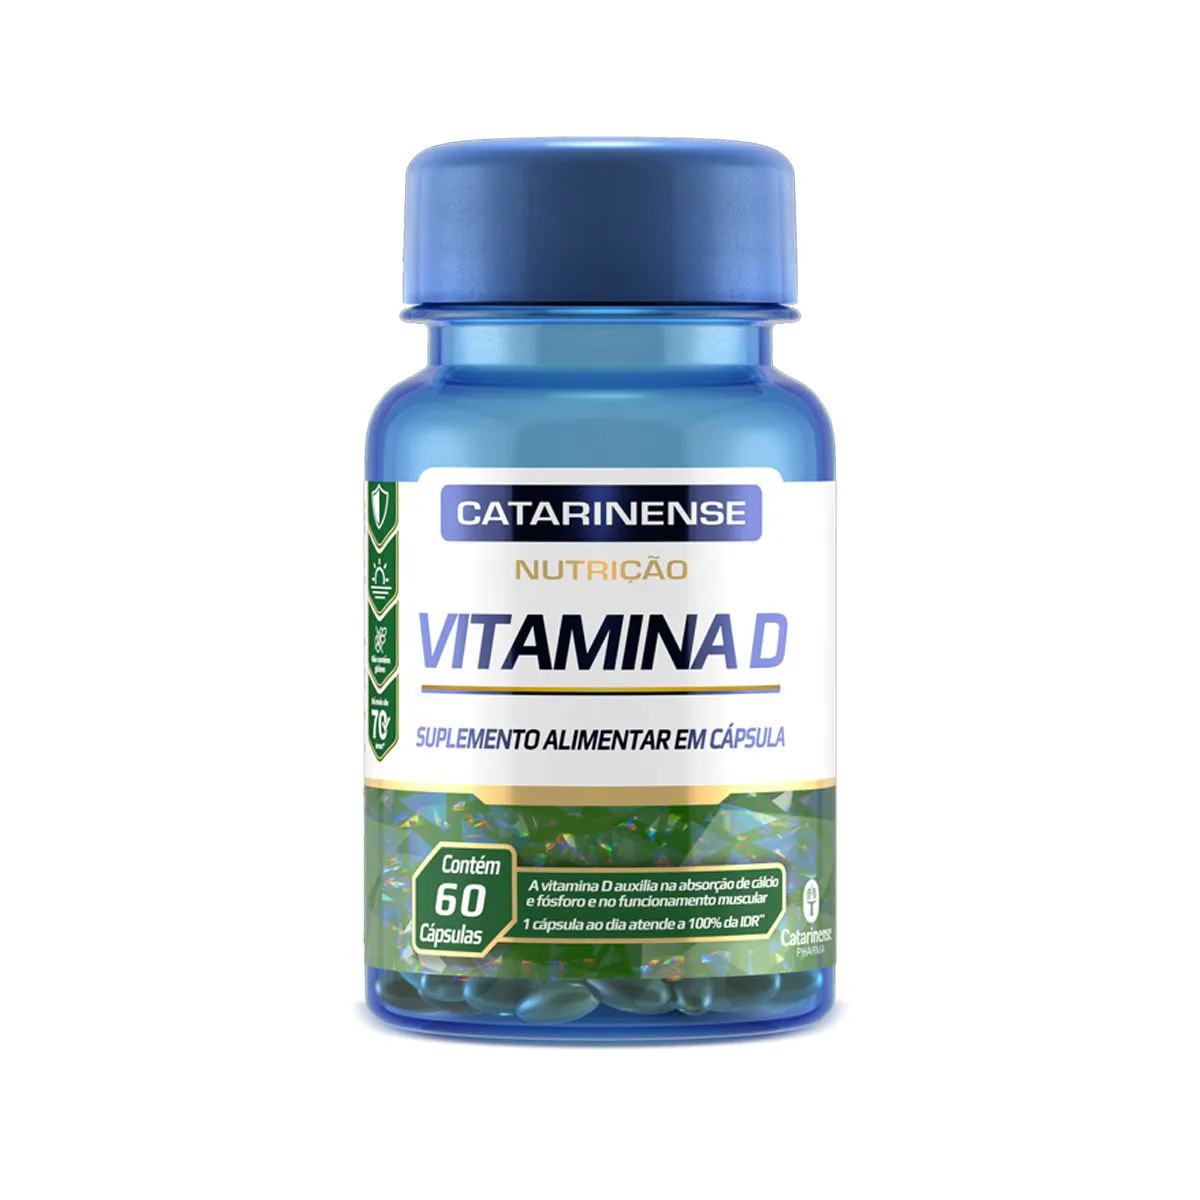 Vitamina D 250mg 60 Cápsulas  - Catarinense